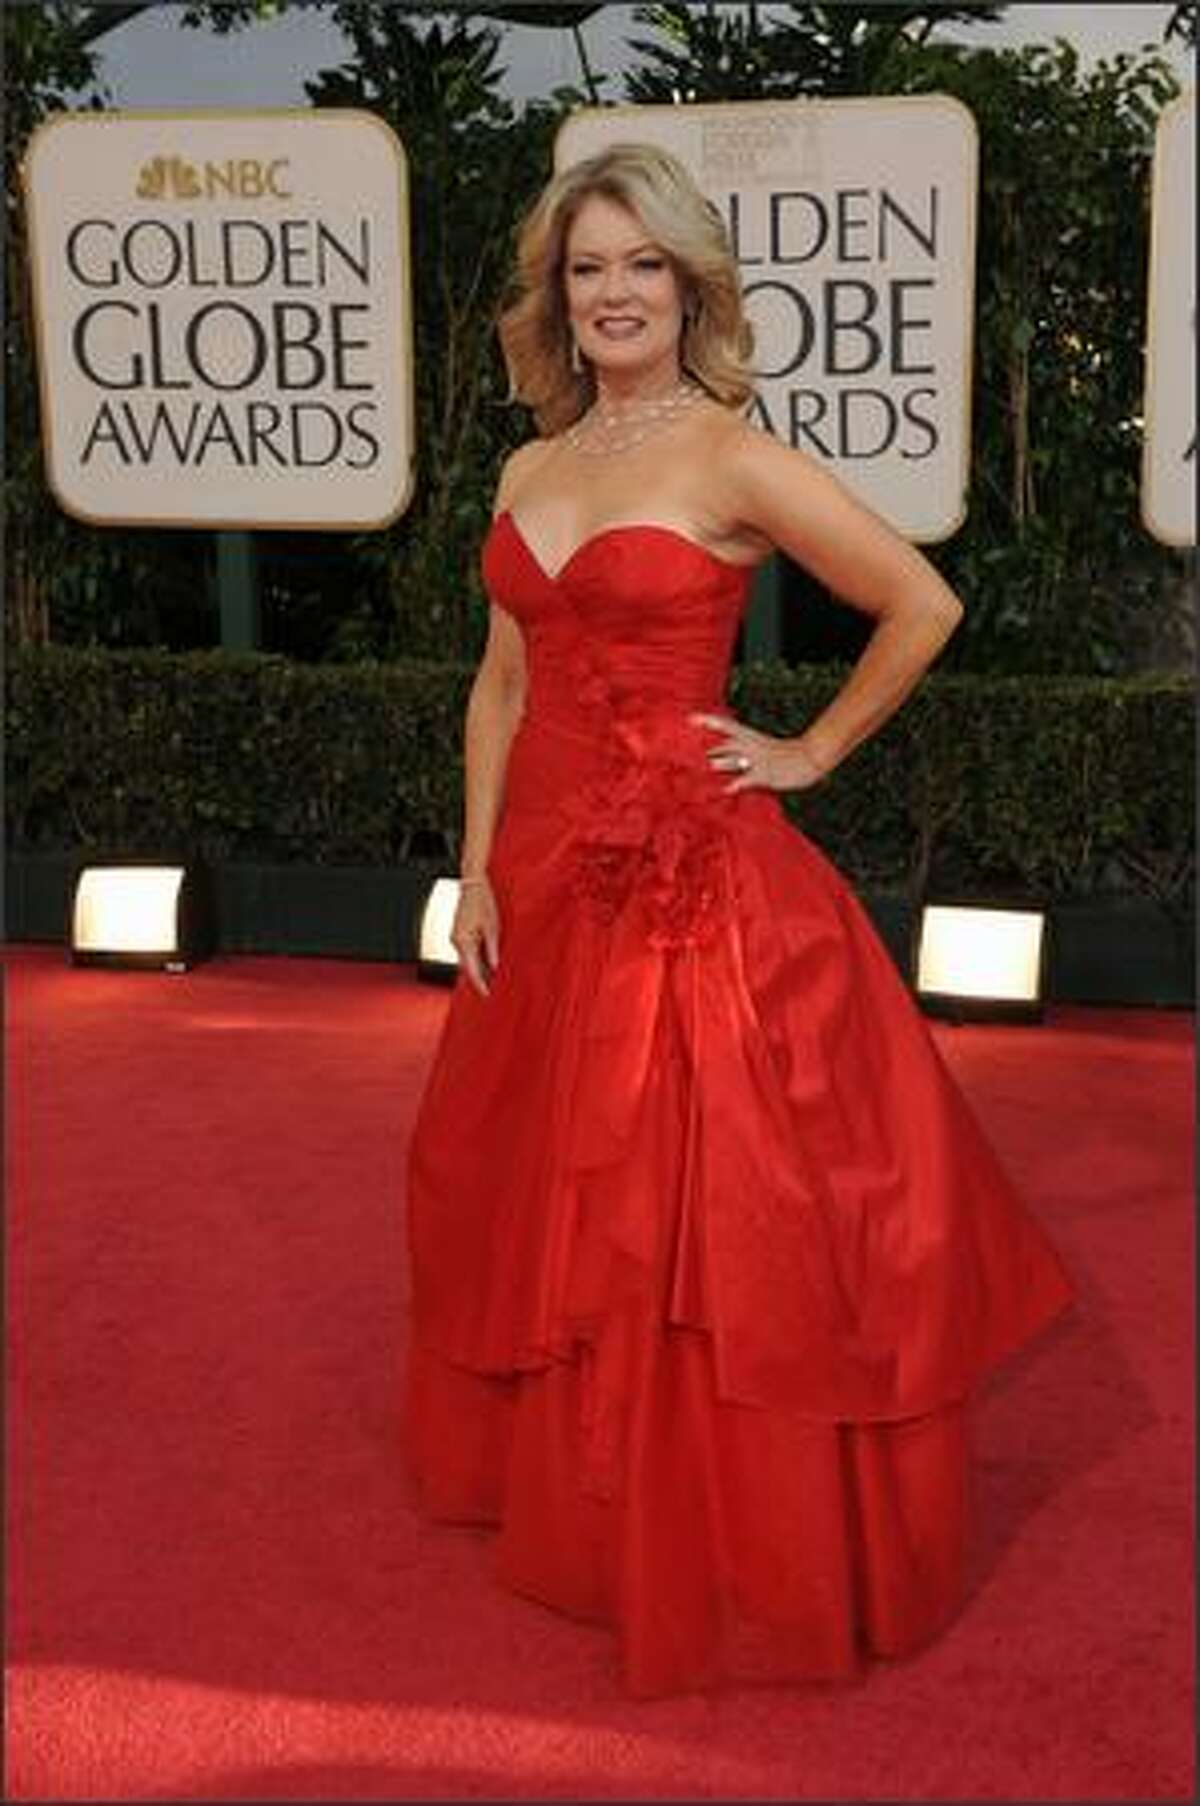 Television personality Mary Hart arrives at the 66th Annual Golden Globe Awards held at the Beverly Hilton Hotel in Beverly Hills, California.